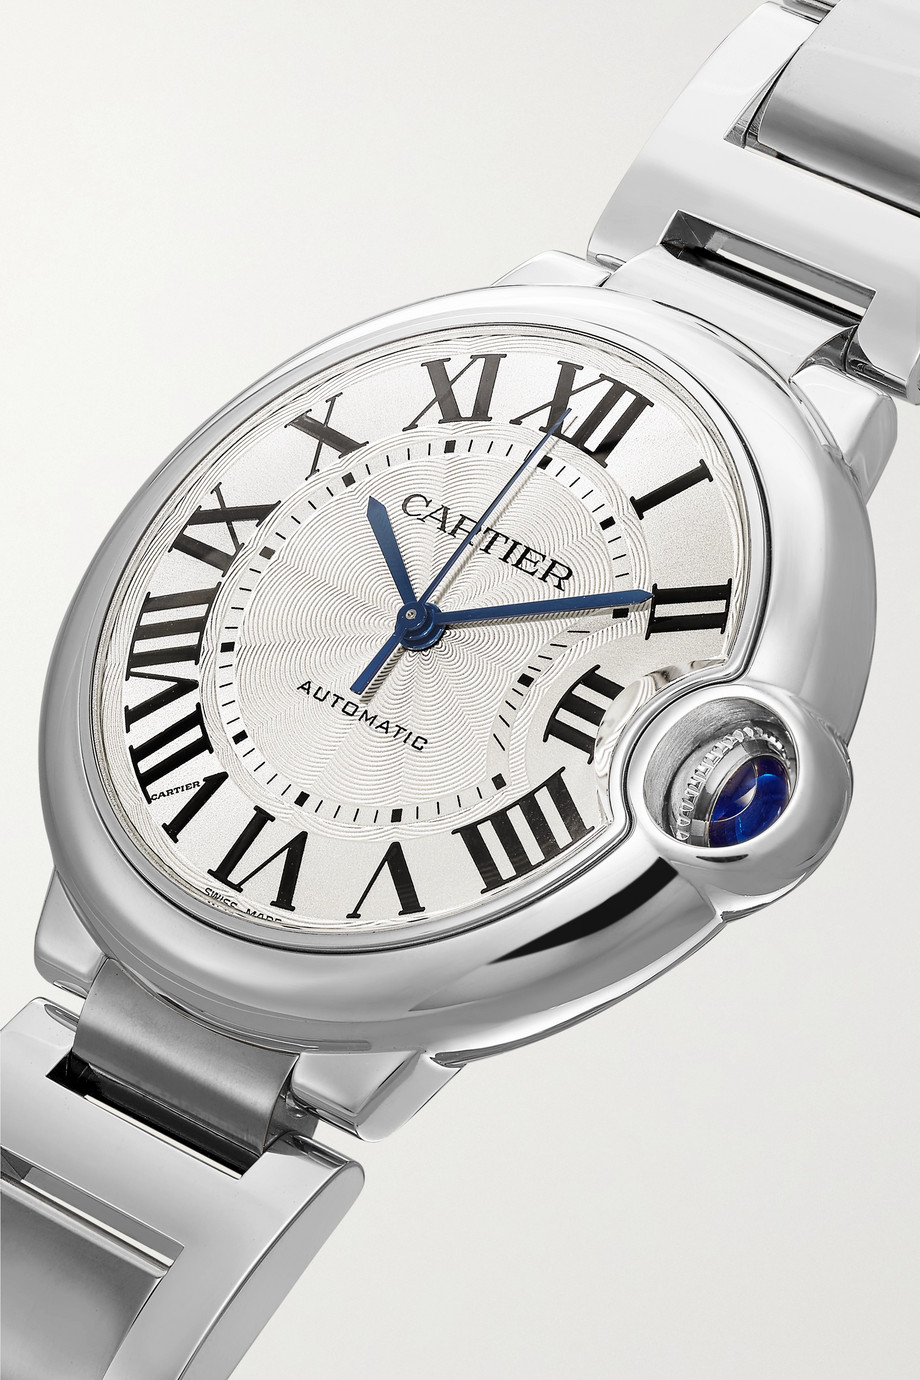 Cartier Ballon Bleu de Cartier Automatic 36.6mm stainless steel watch